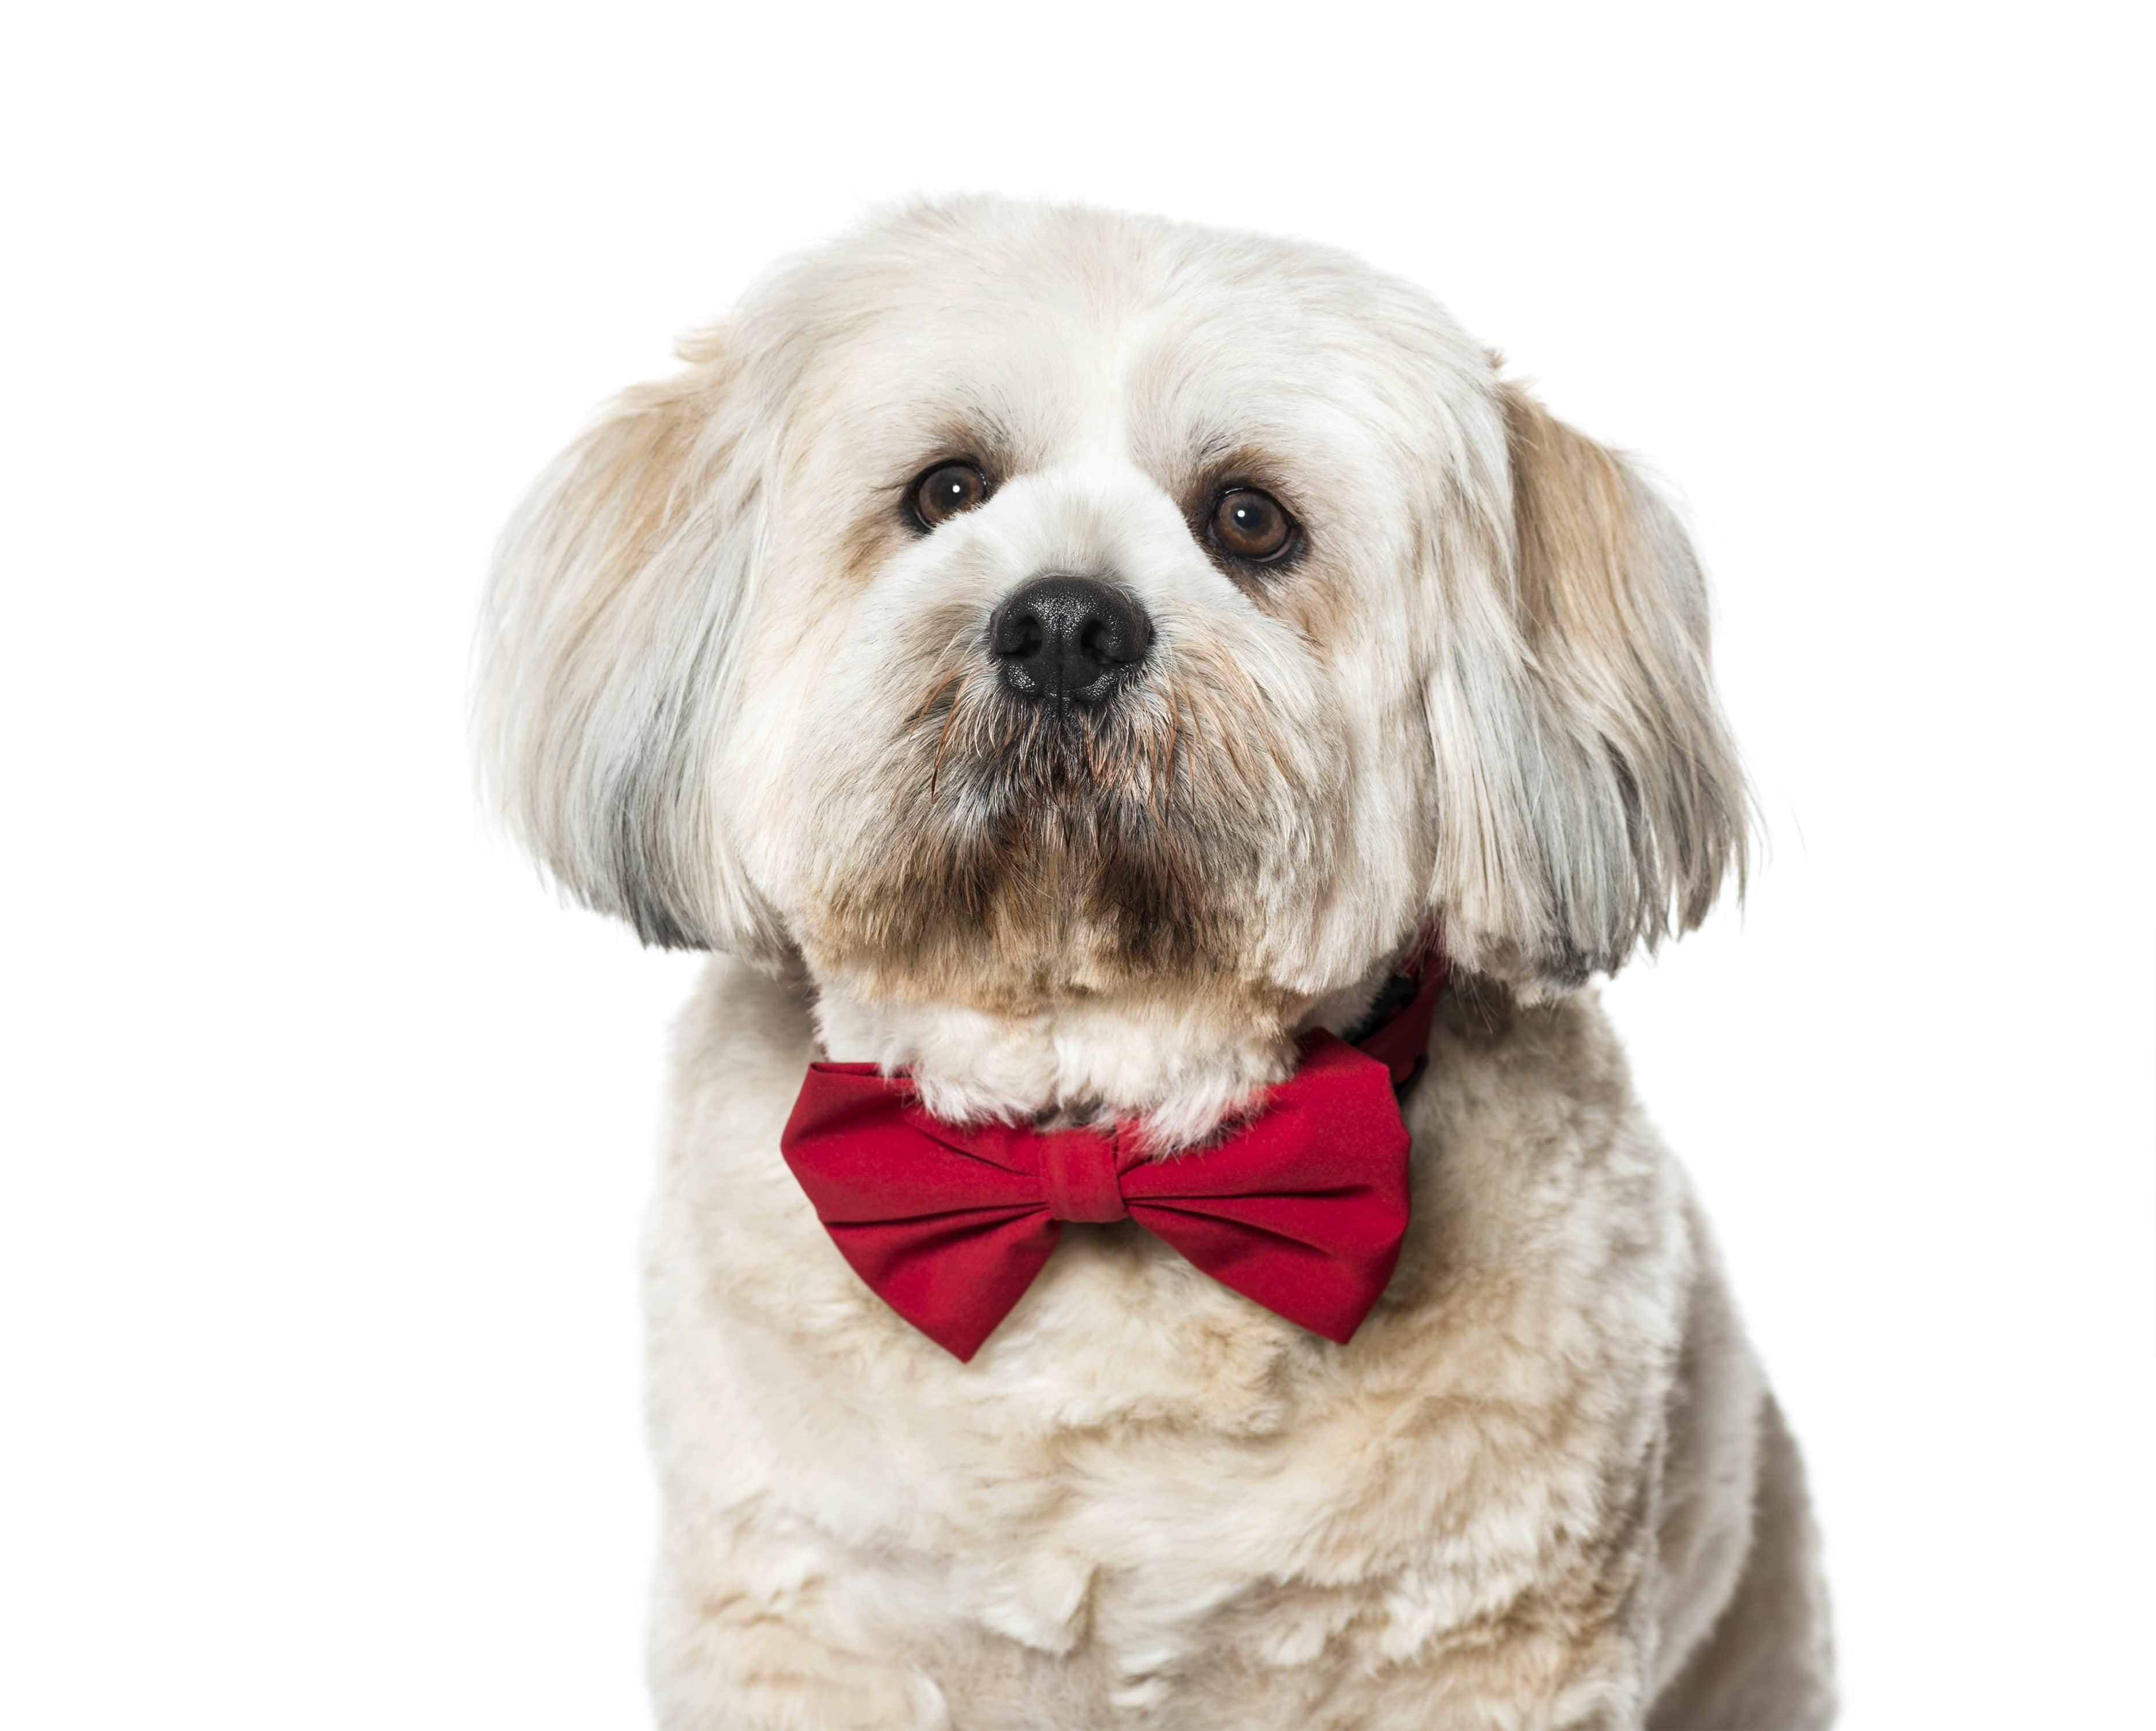 lhasa-apso-in-bow-tie-against-white-background-HG64Q8Y-min